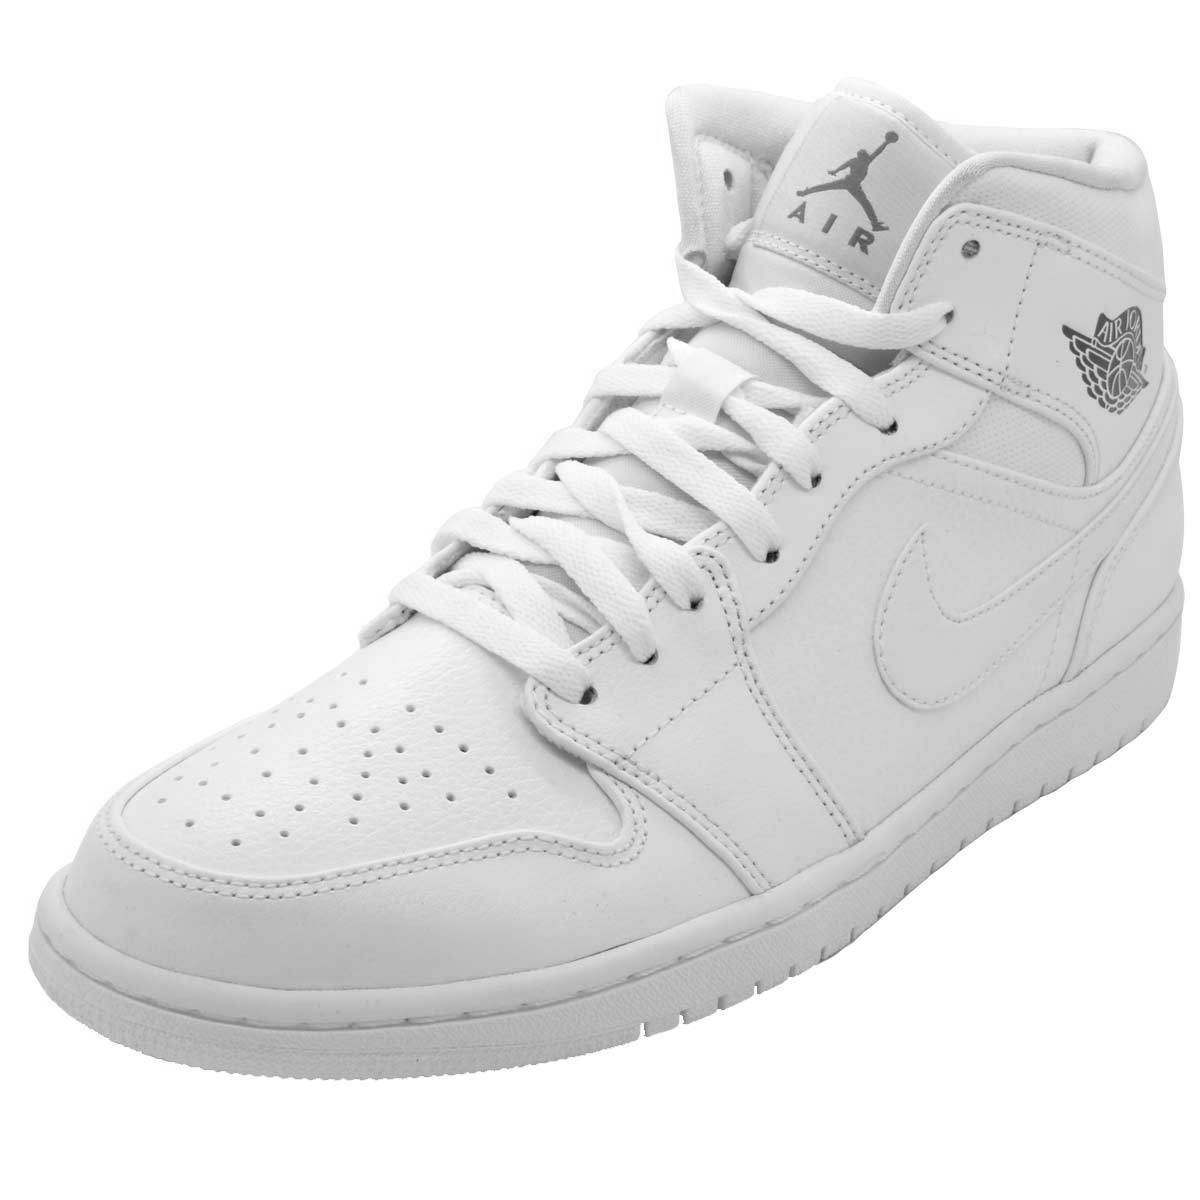 half off 8f995 7d995 NIKE AIR JORDAN RETRO 1 MID White MENS SNEAKERS 554724-102